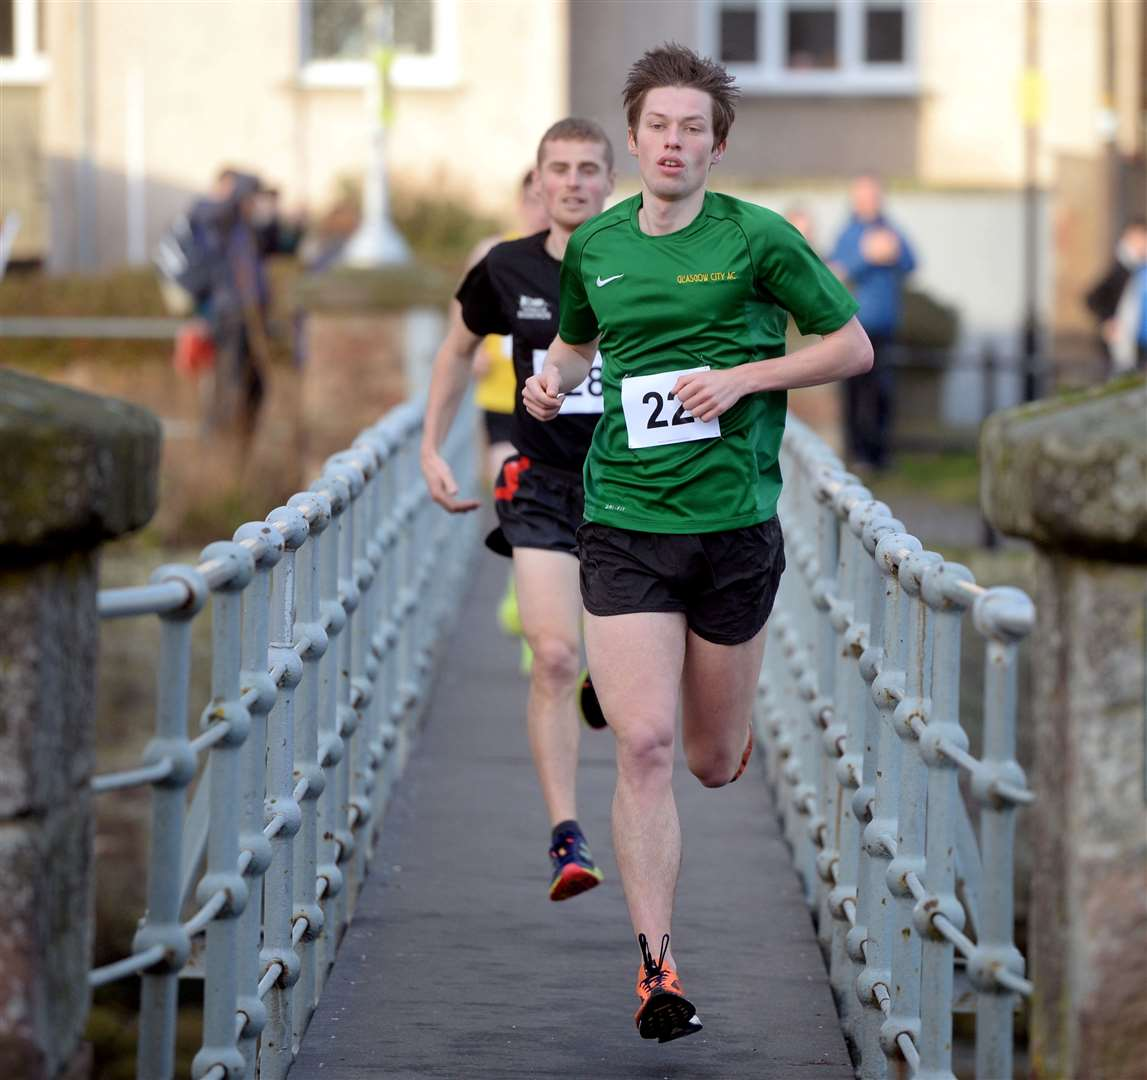 Nairn Turkey Trot ..First male was Stephen Mackay...Nairn Turkey Trot .Picture: Gair Fraser. Image No. 042869..